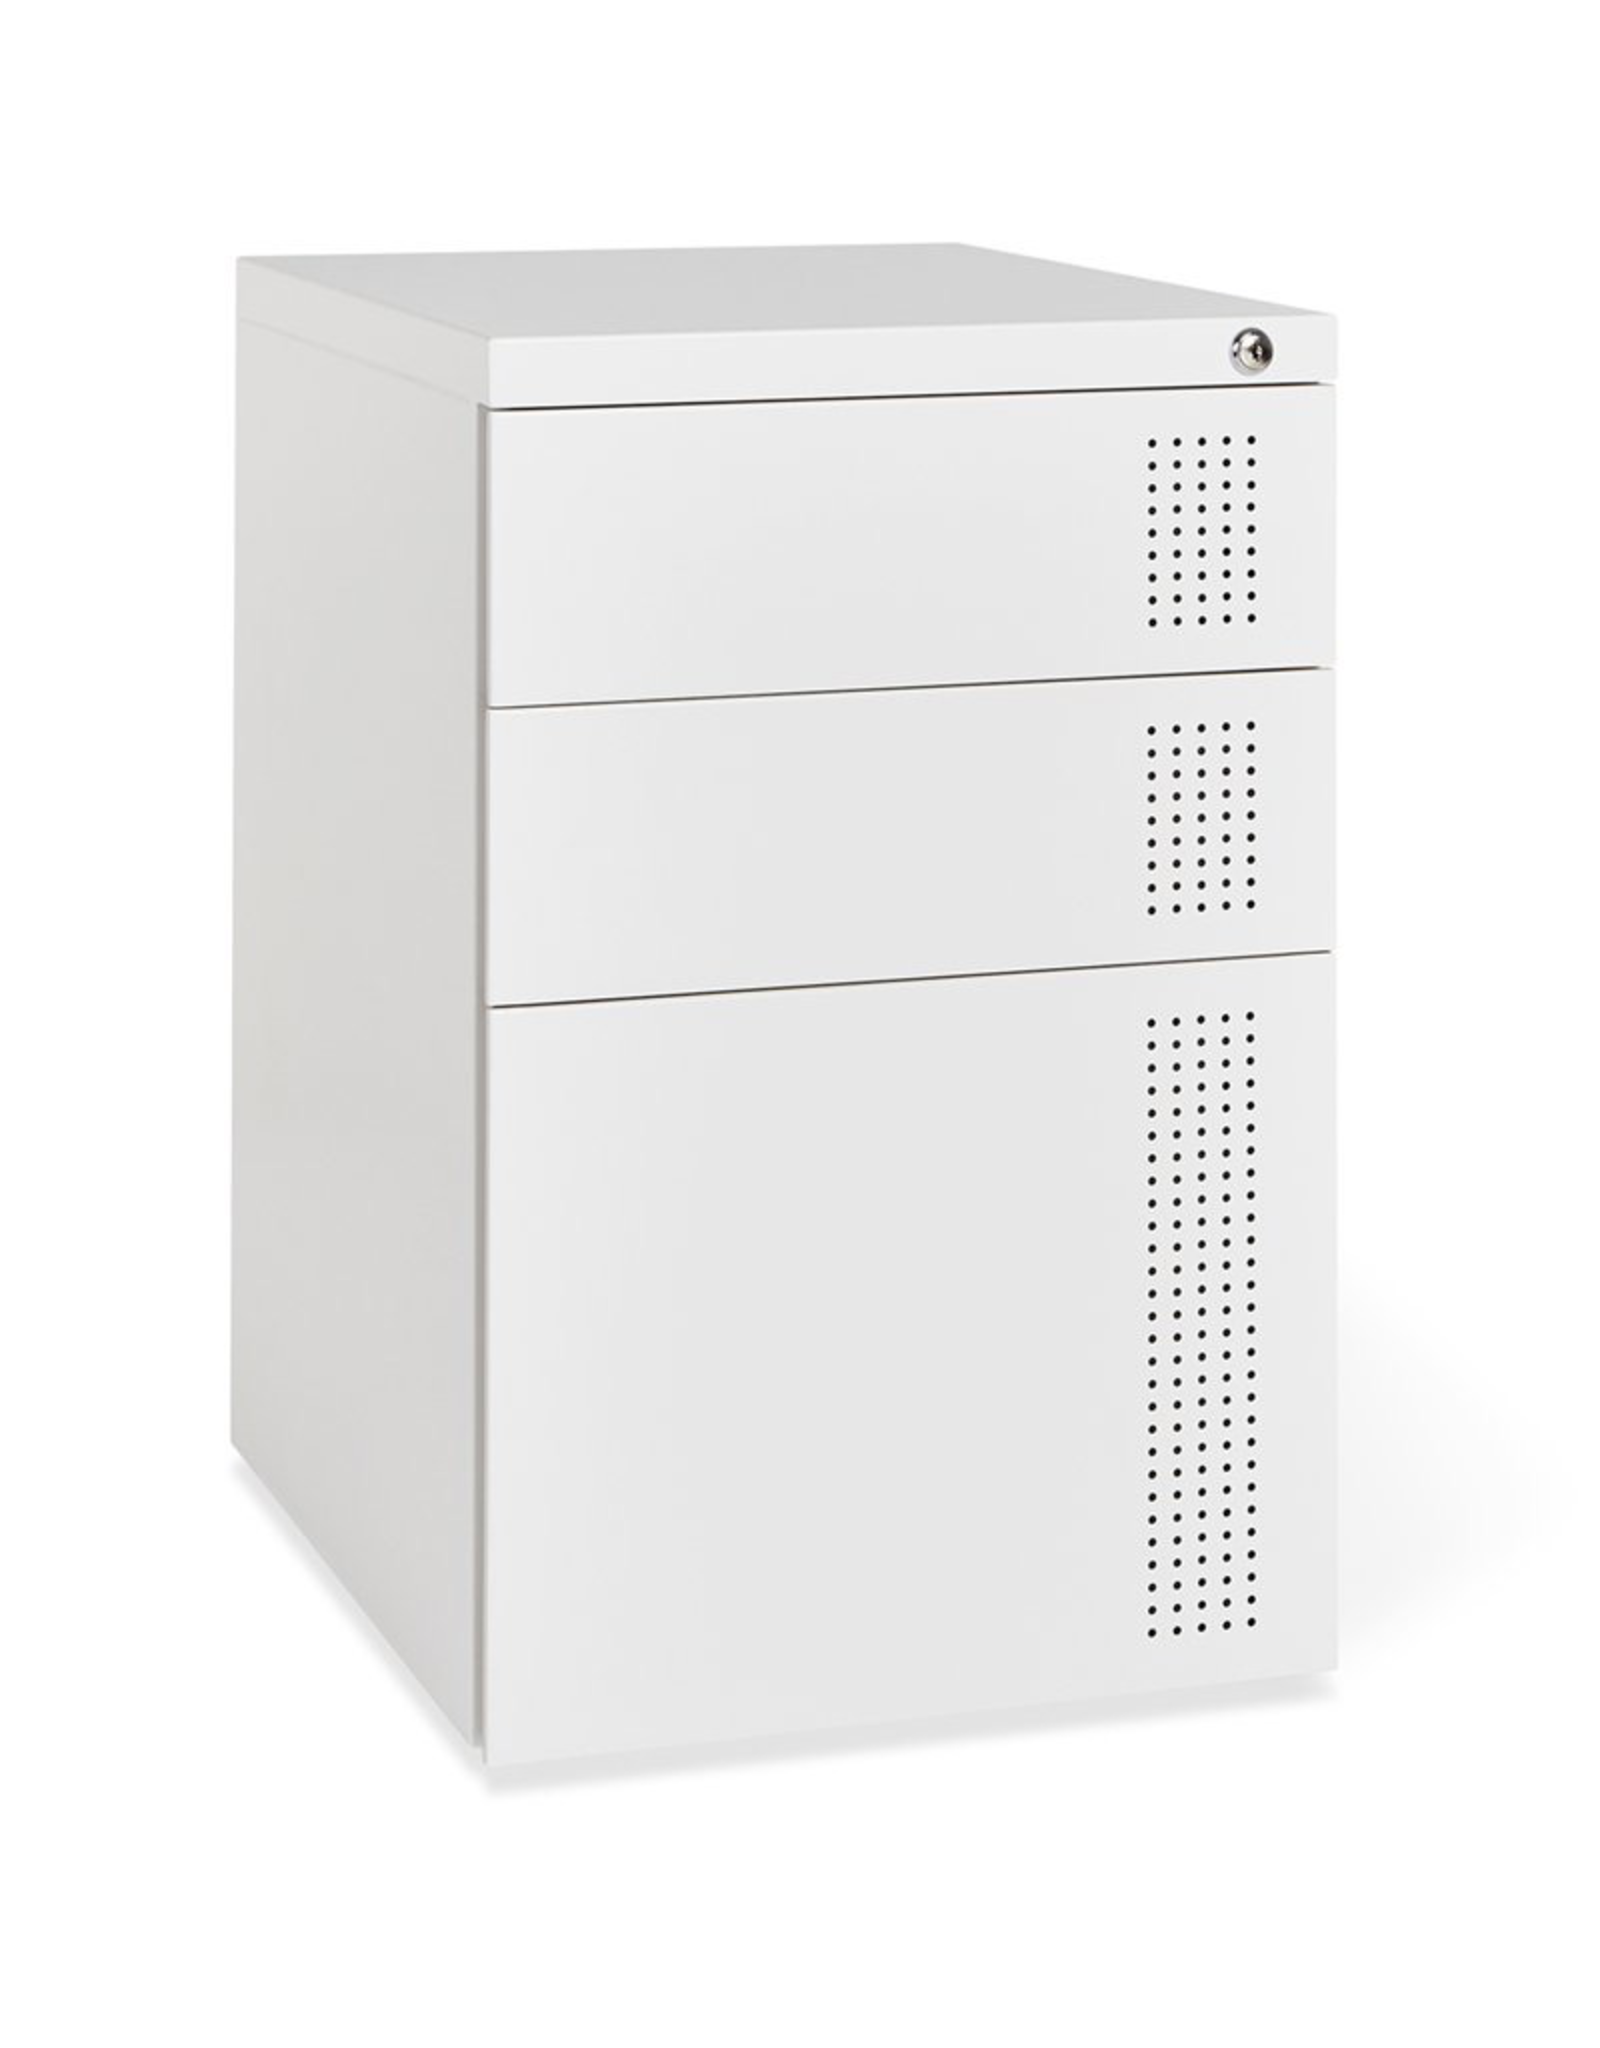 Gus* Modern Perf File Cabinet